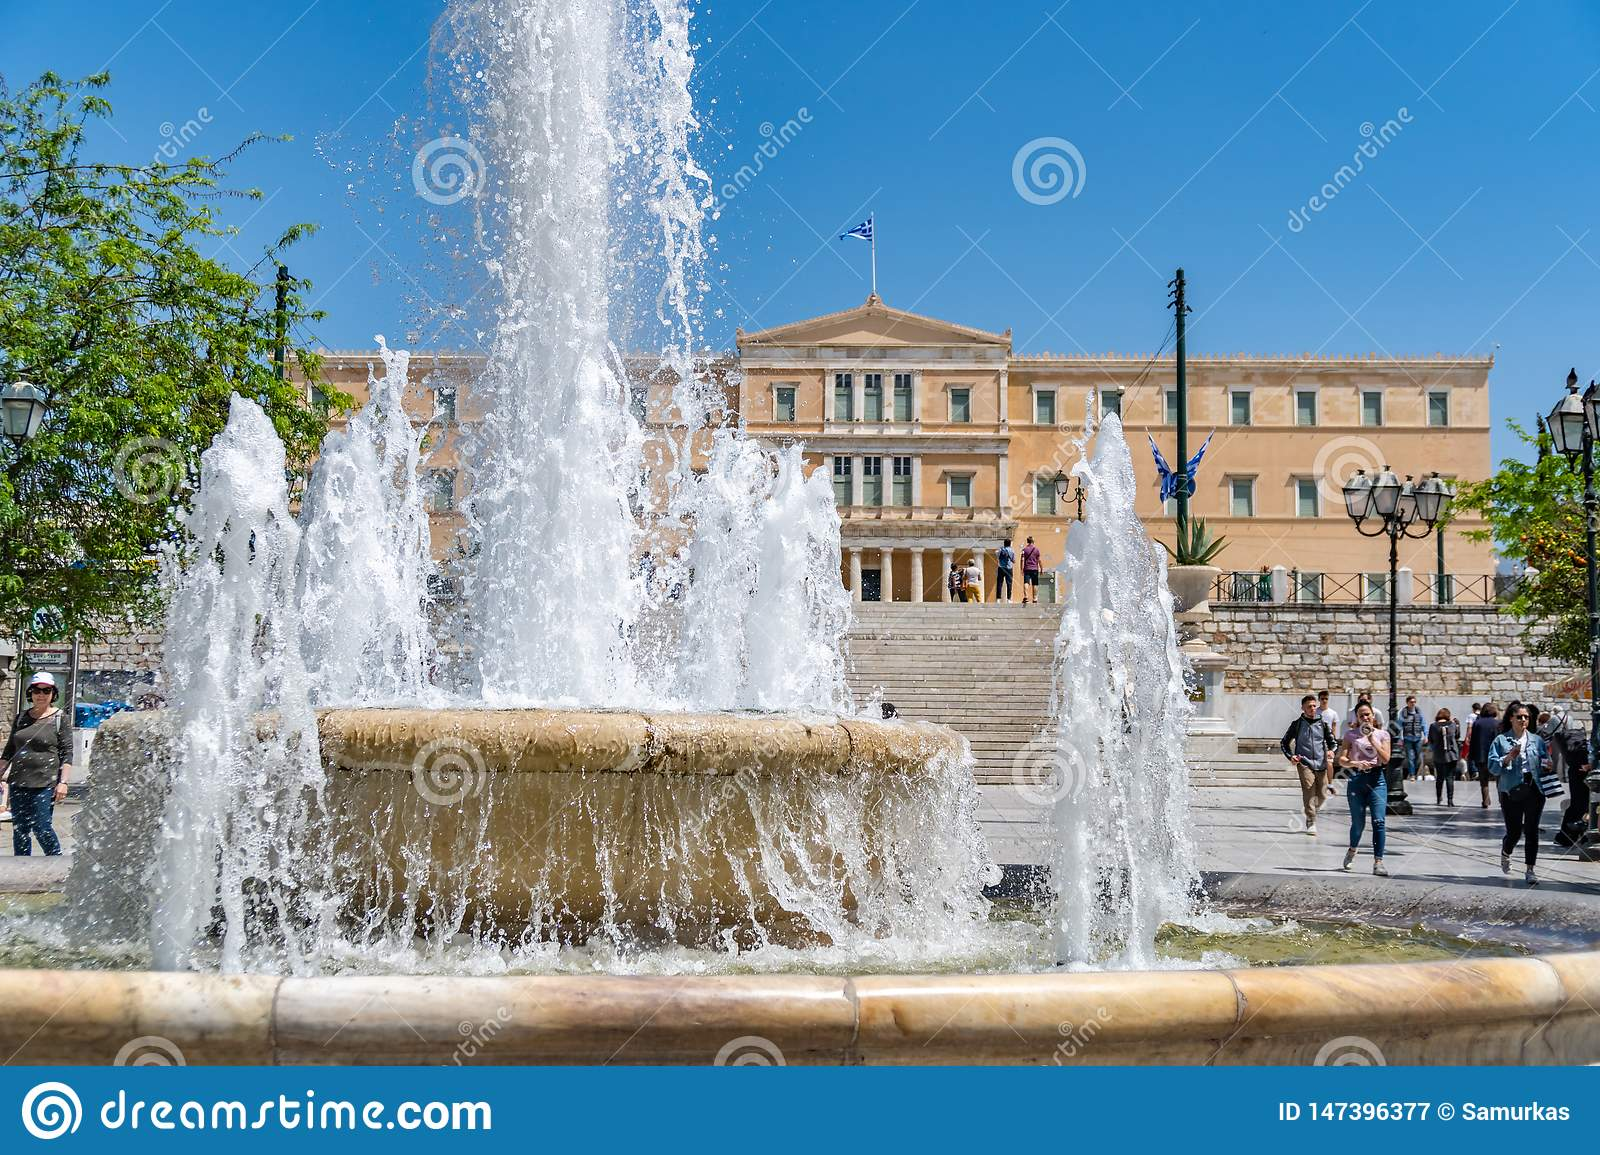 Athens, Greece - 27.04.2019: Official residence of the President of the Hellenic Republic